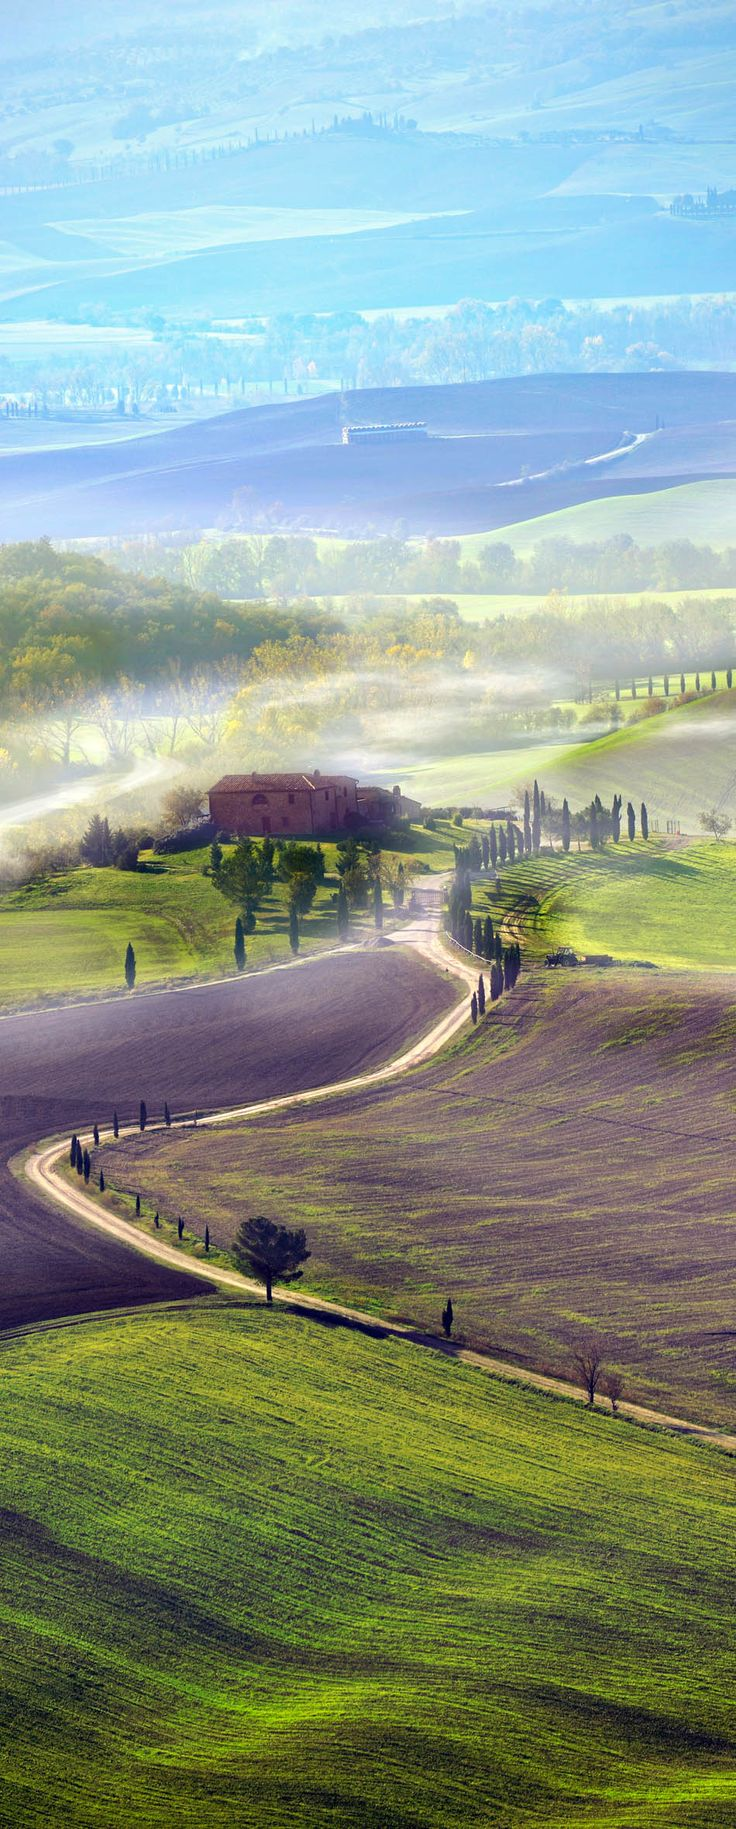 Countryside road in Tuscany, Italy